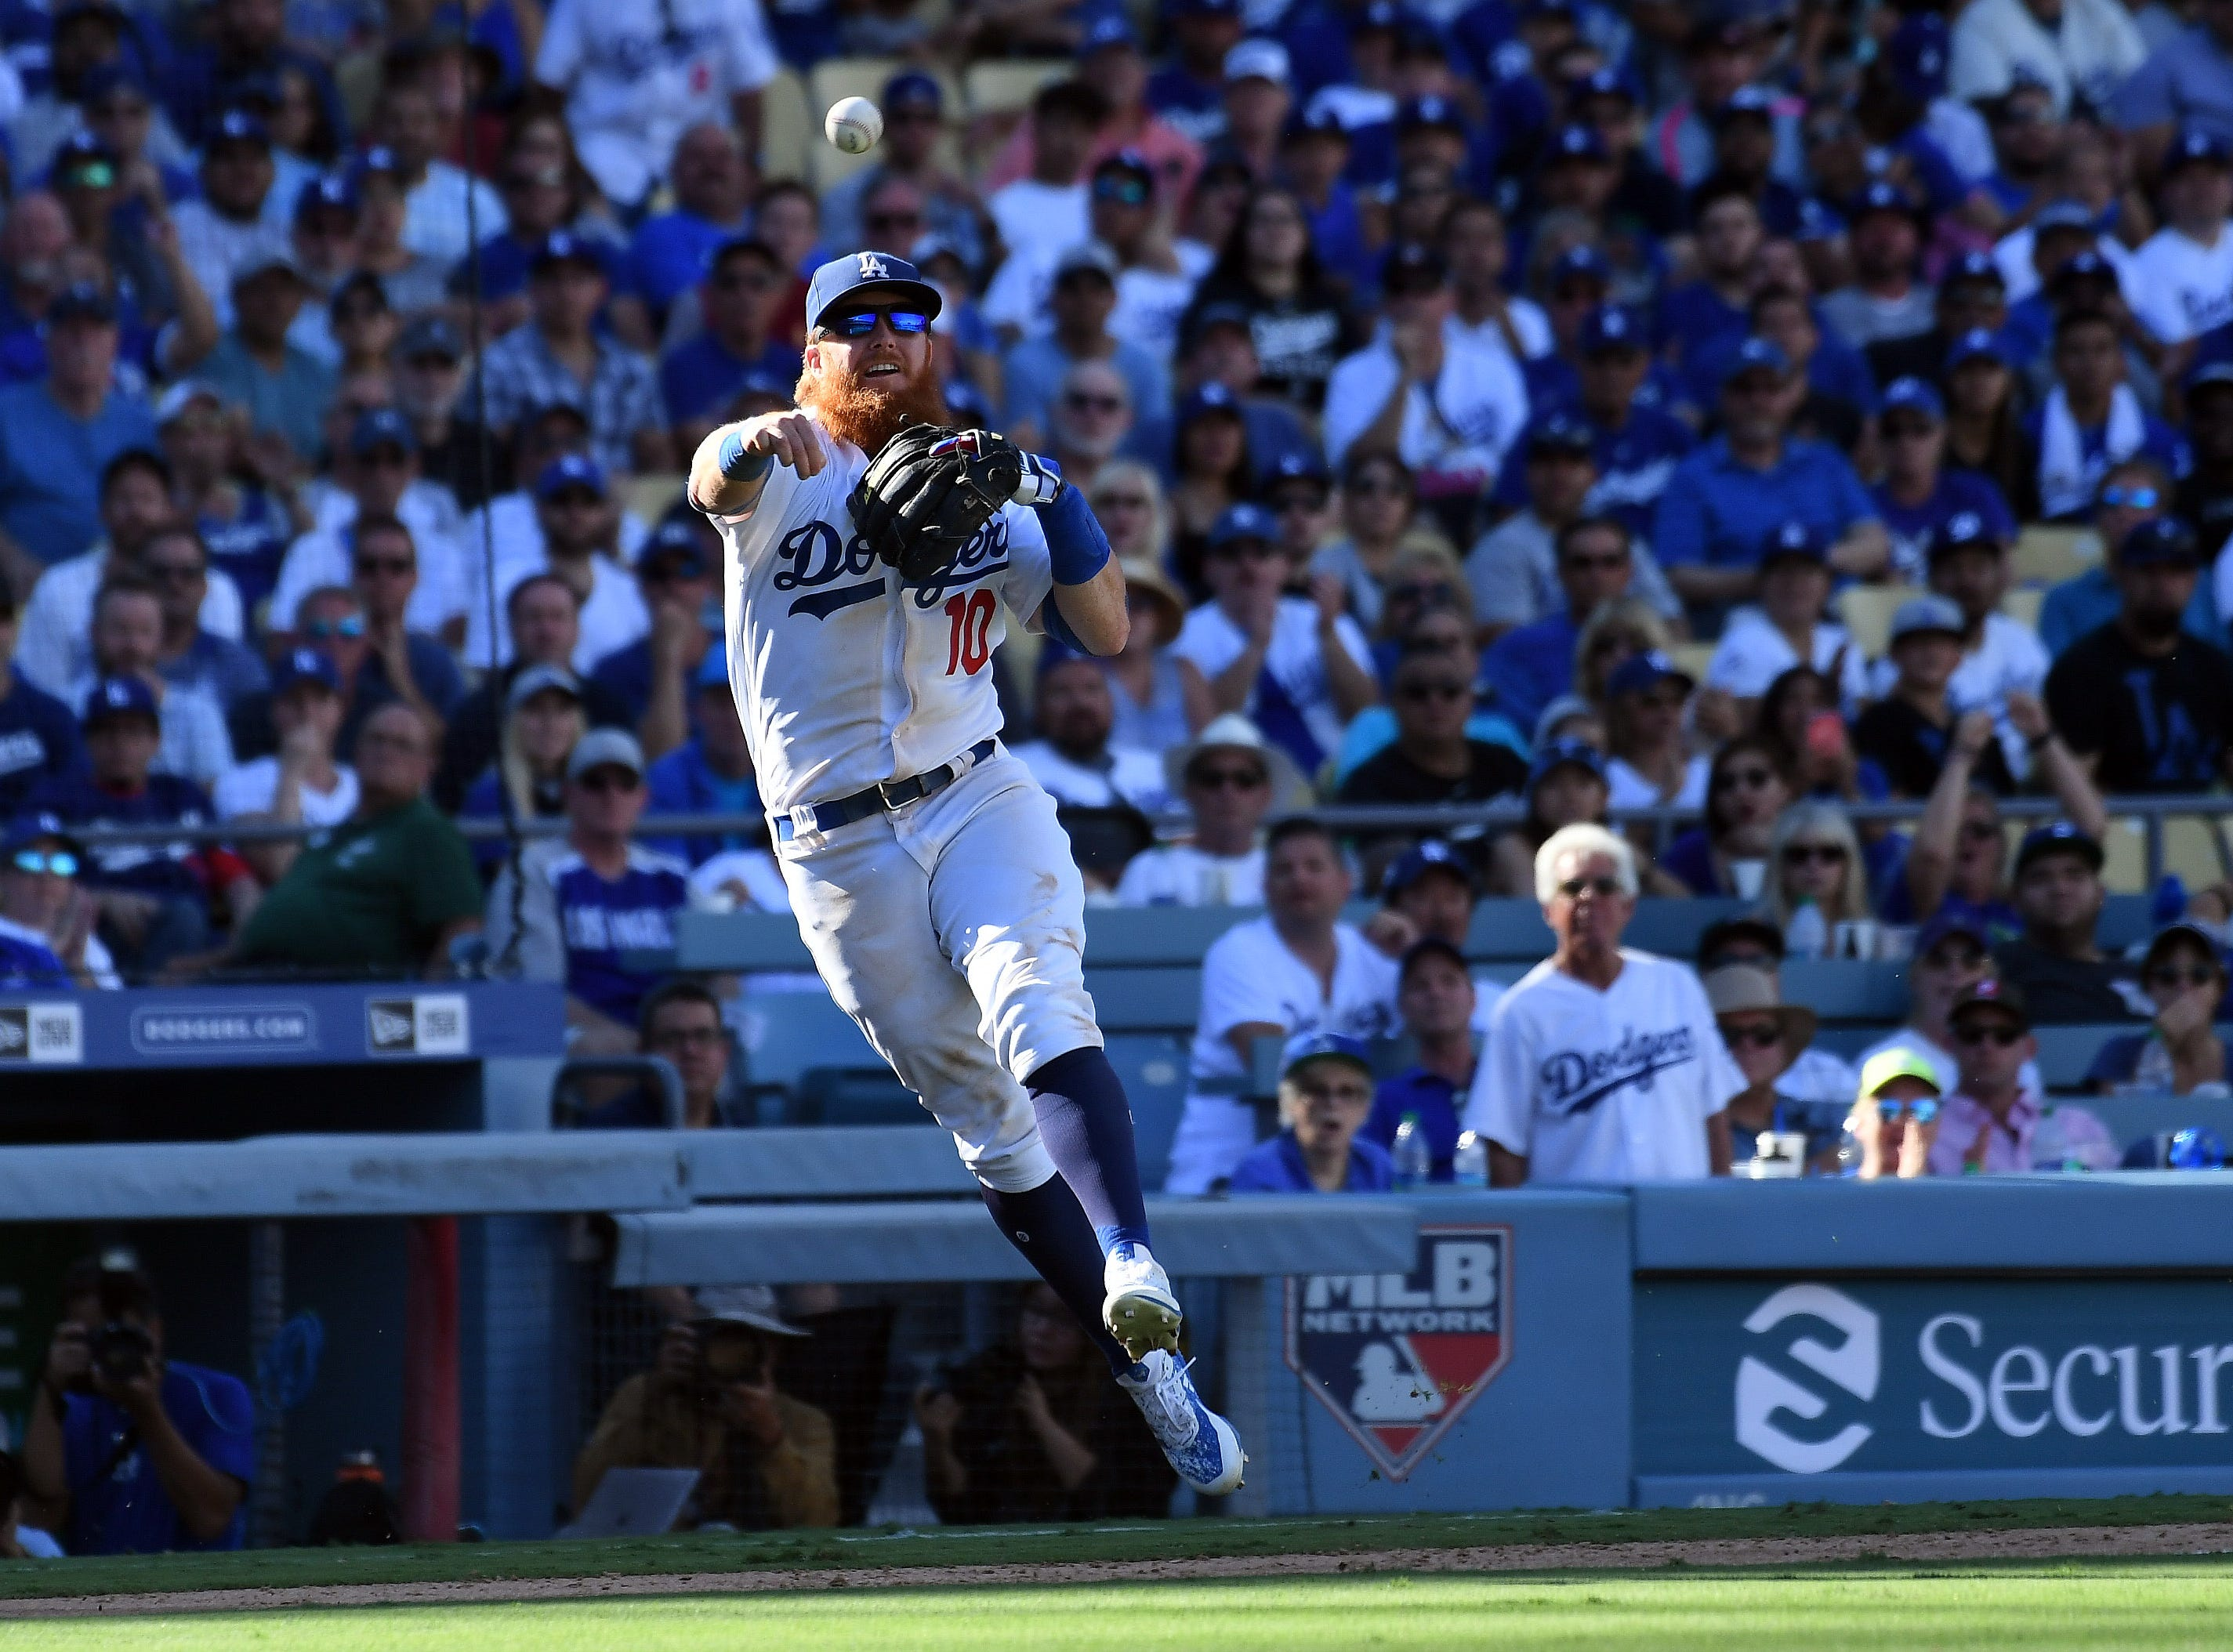 Dodgers third baseman Justin Turner throws to first in the eighth inning.